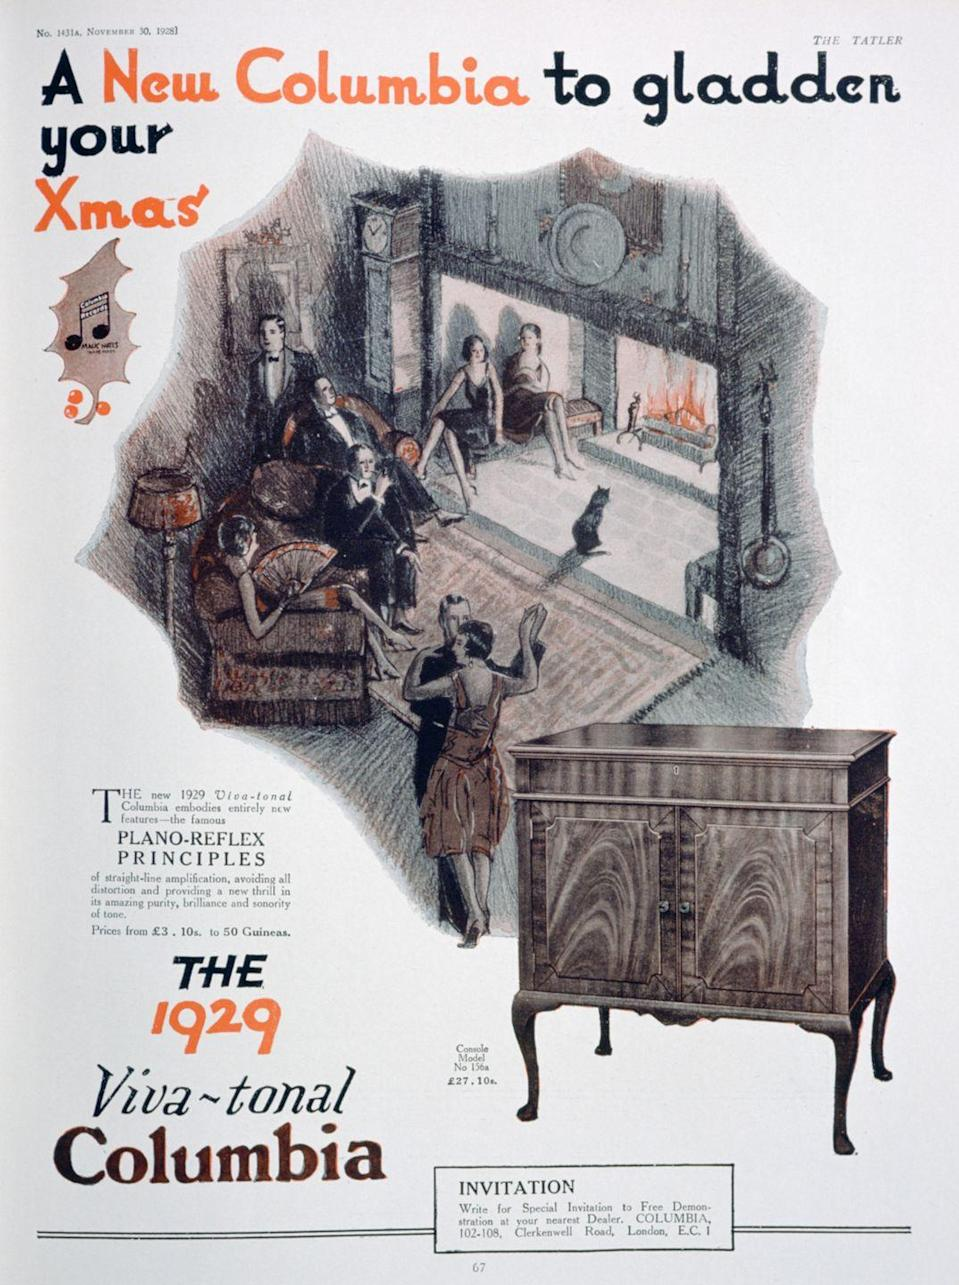 <p>In this Christmas advert for Columbia gramophones, a dapper group of friends enjoy a cozy fire. The prices of the gramophones are advertised to start as low as $3 ($45 in 2020) and cost as much as $27 ($411 in 2020) for the wooden beaut showcased in the ad.</p>